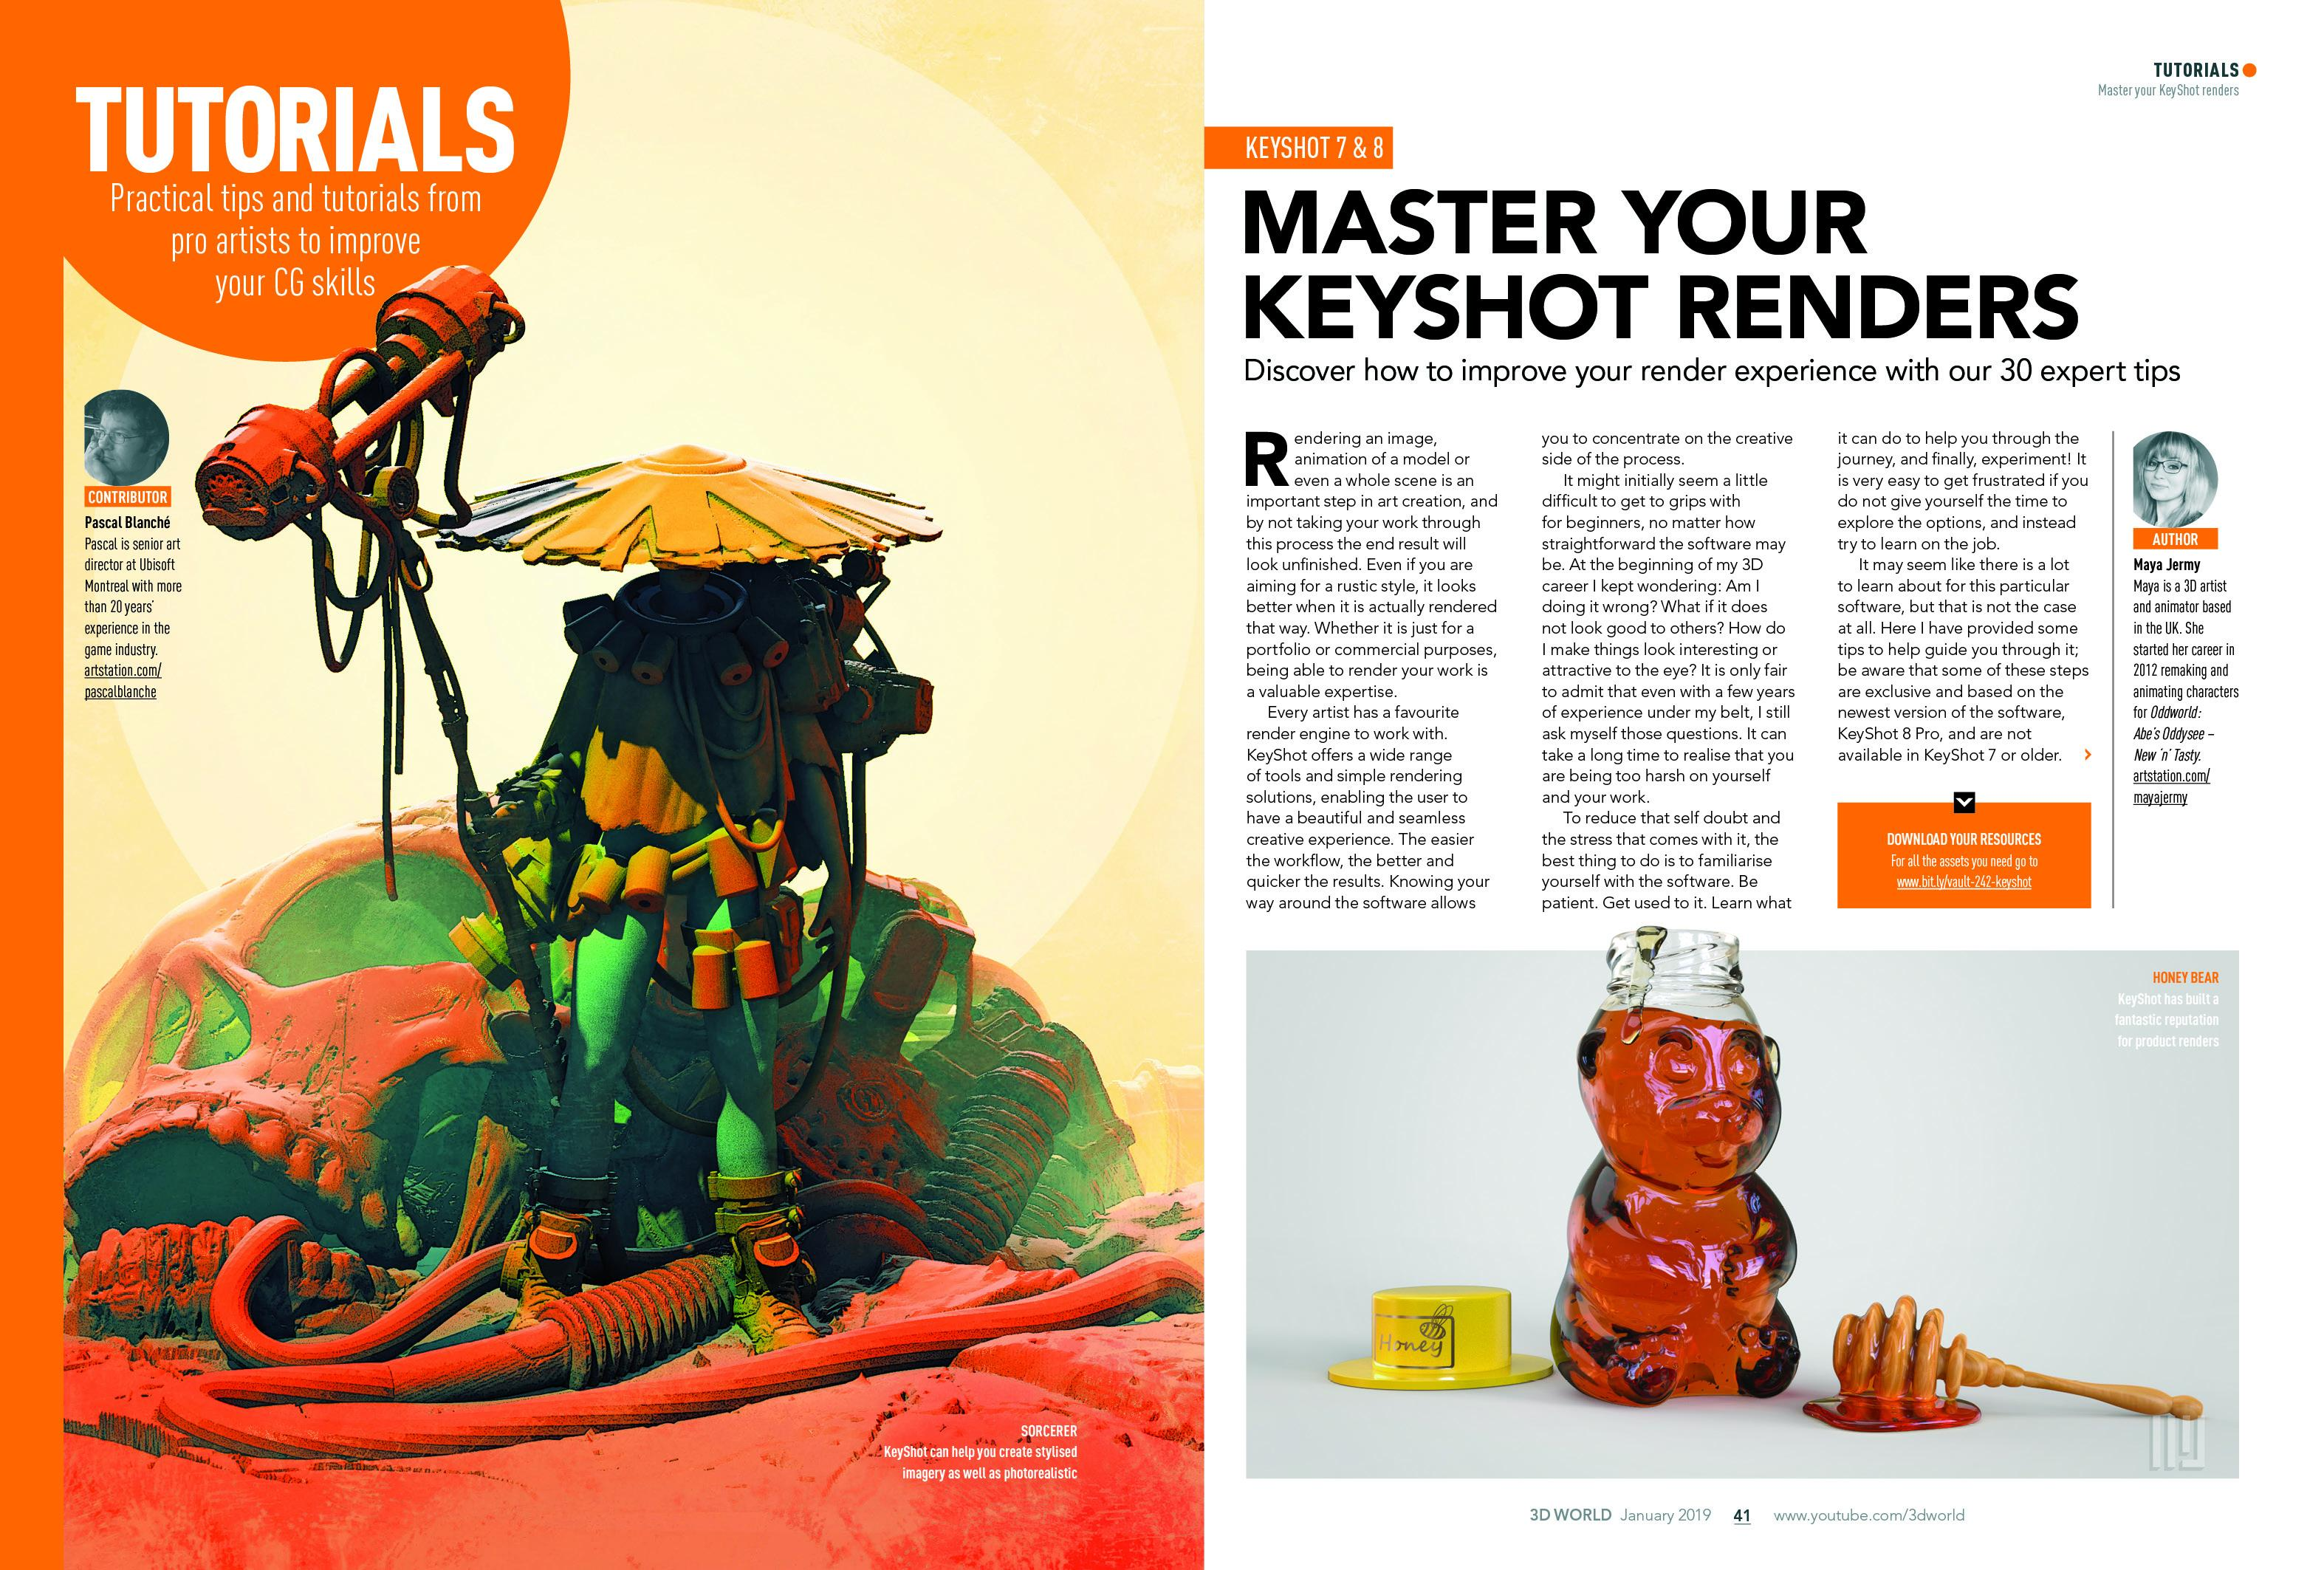 Master your keyshot renders with our top tips